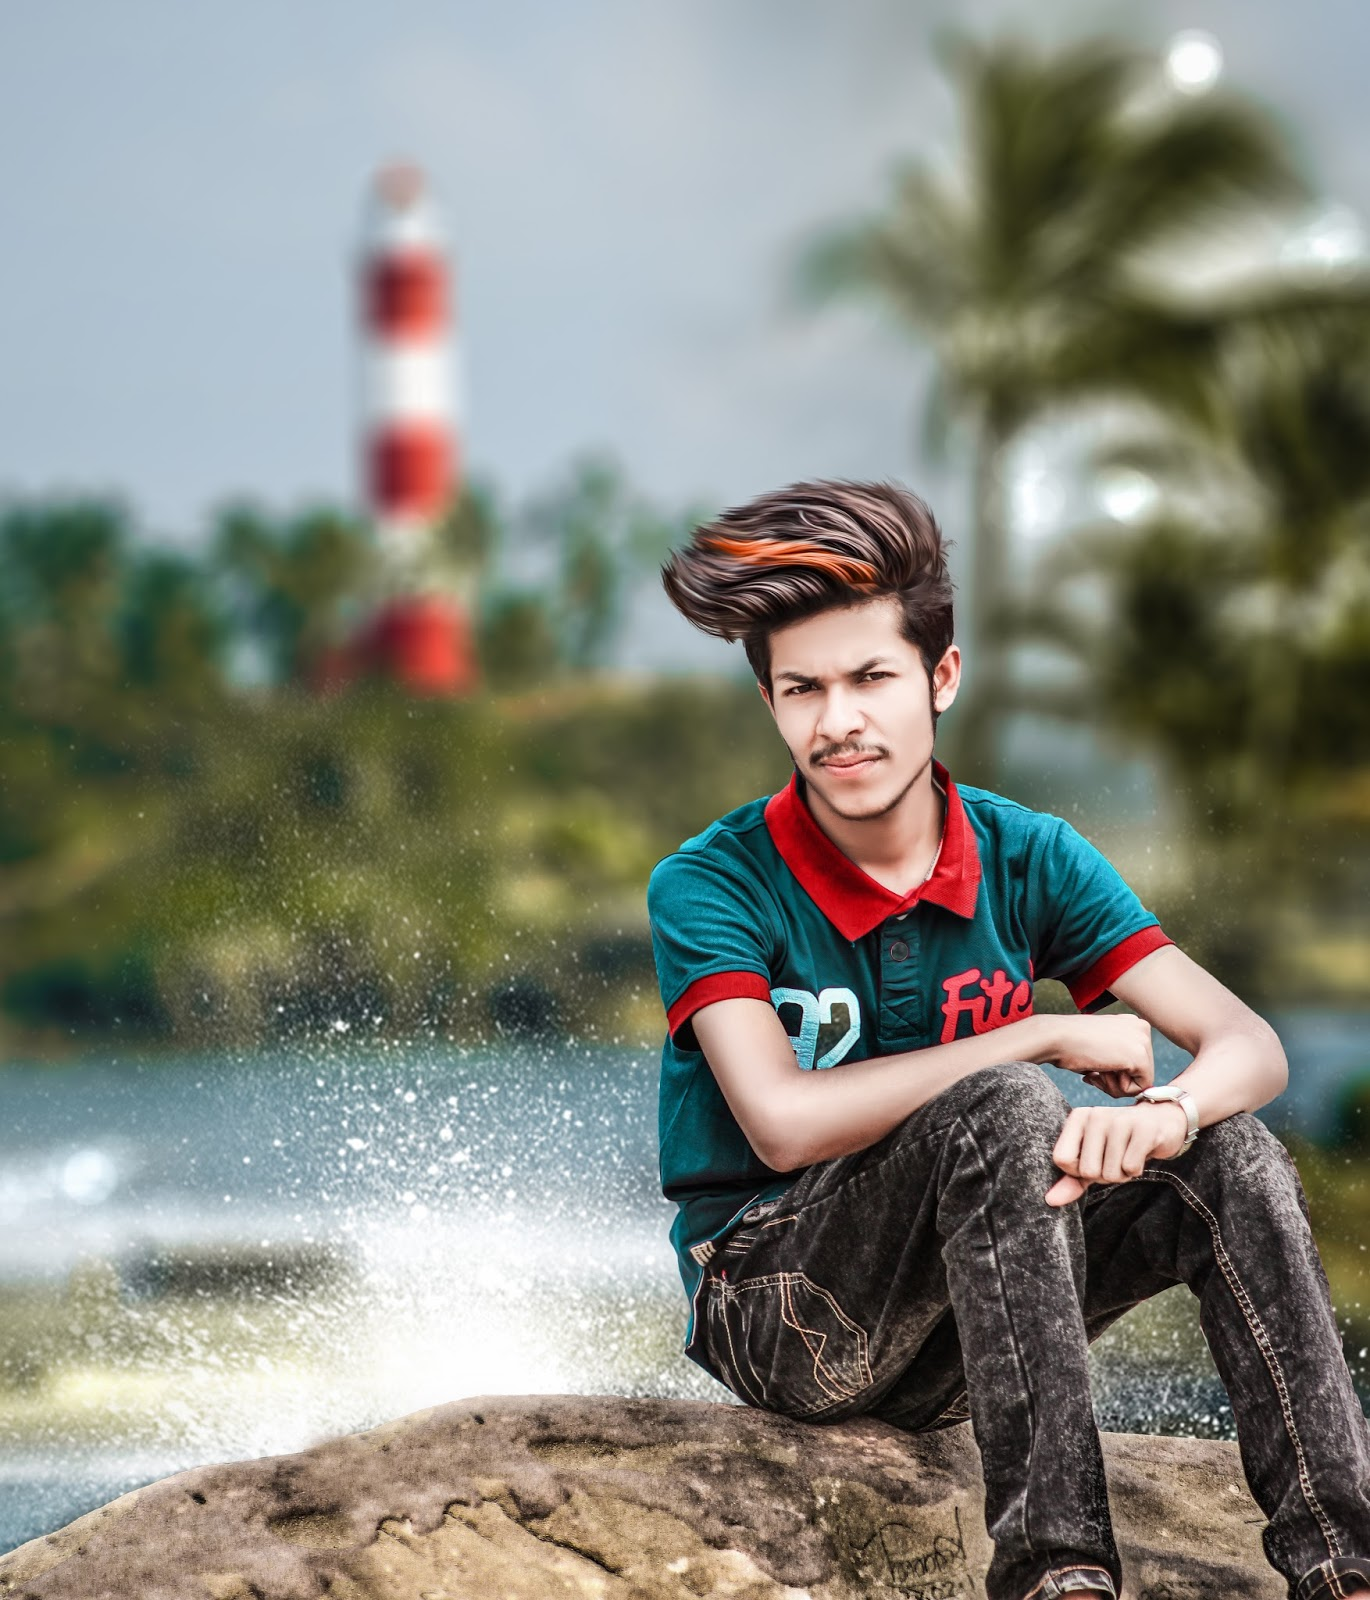 Outdoor portrait cb editing tutorial in photoshop cc online free outdoor portrait cb editing tutorial in photoshop cc baditri Gallery